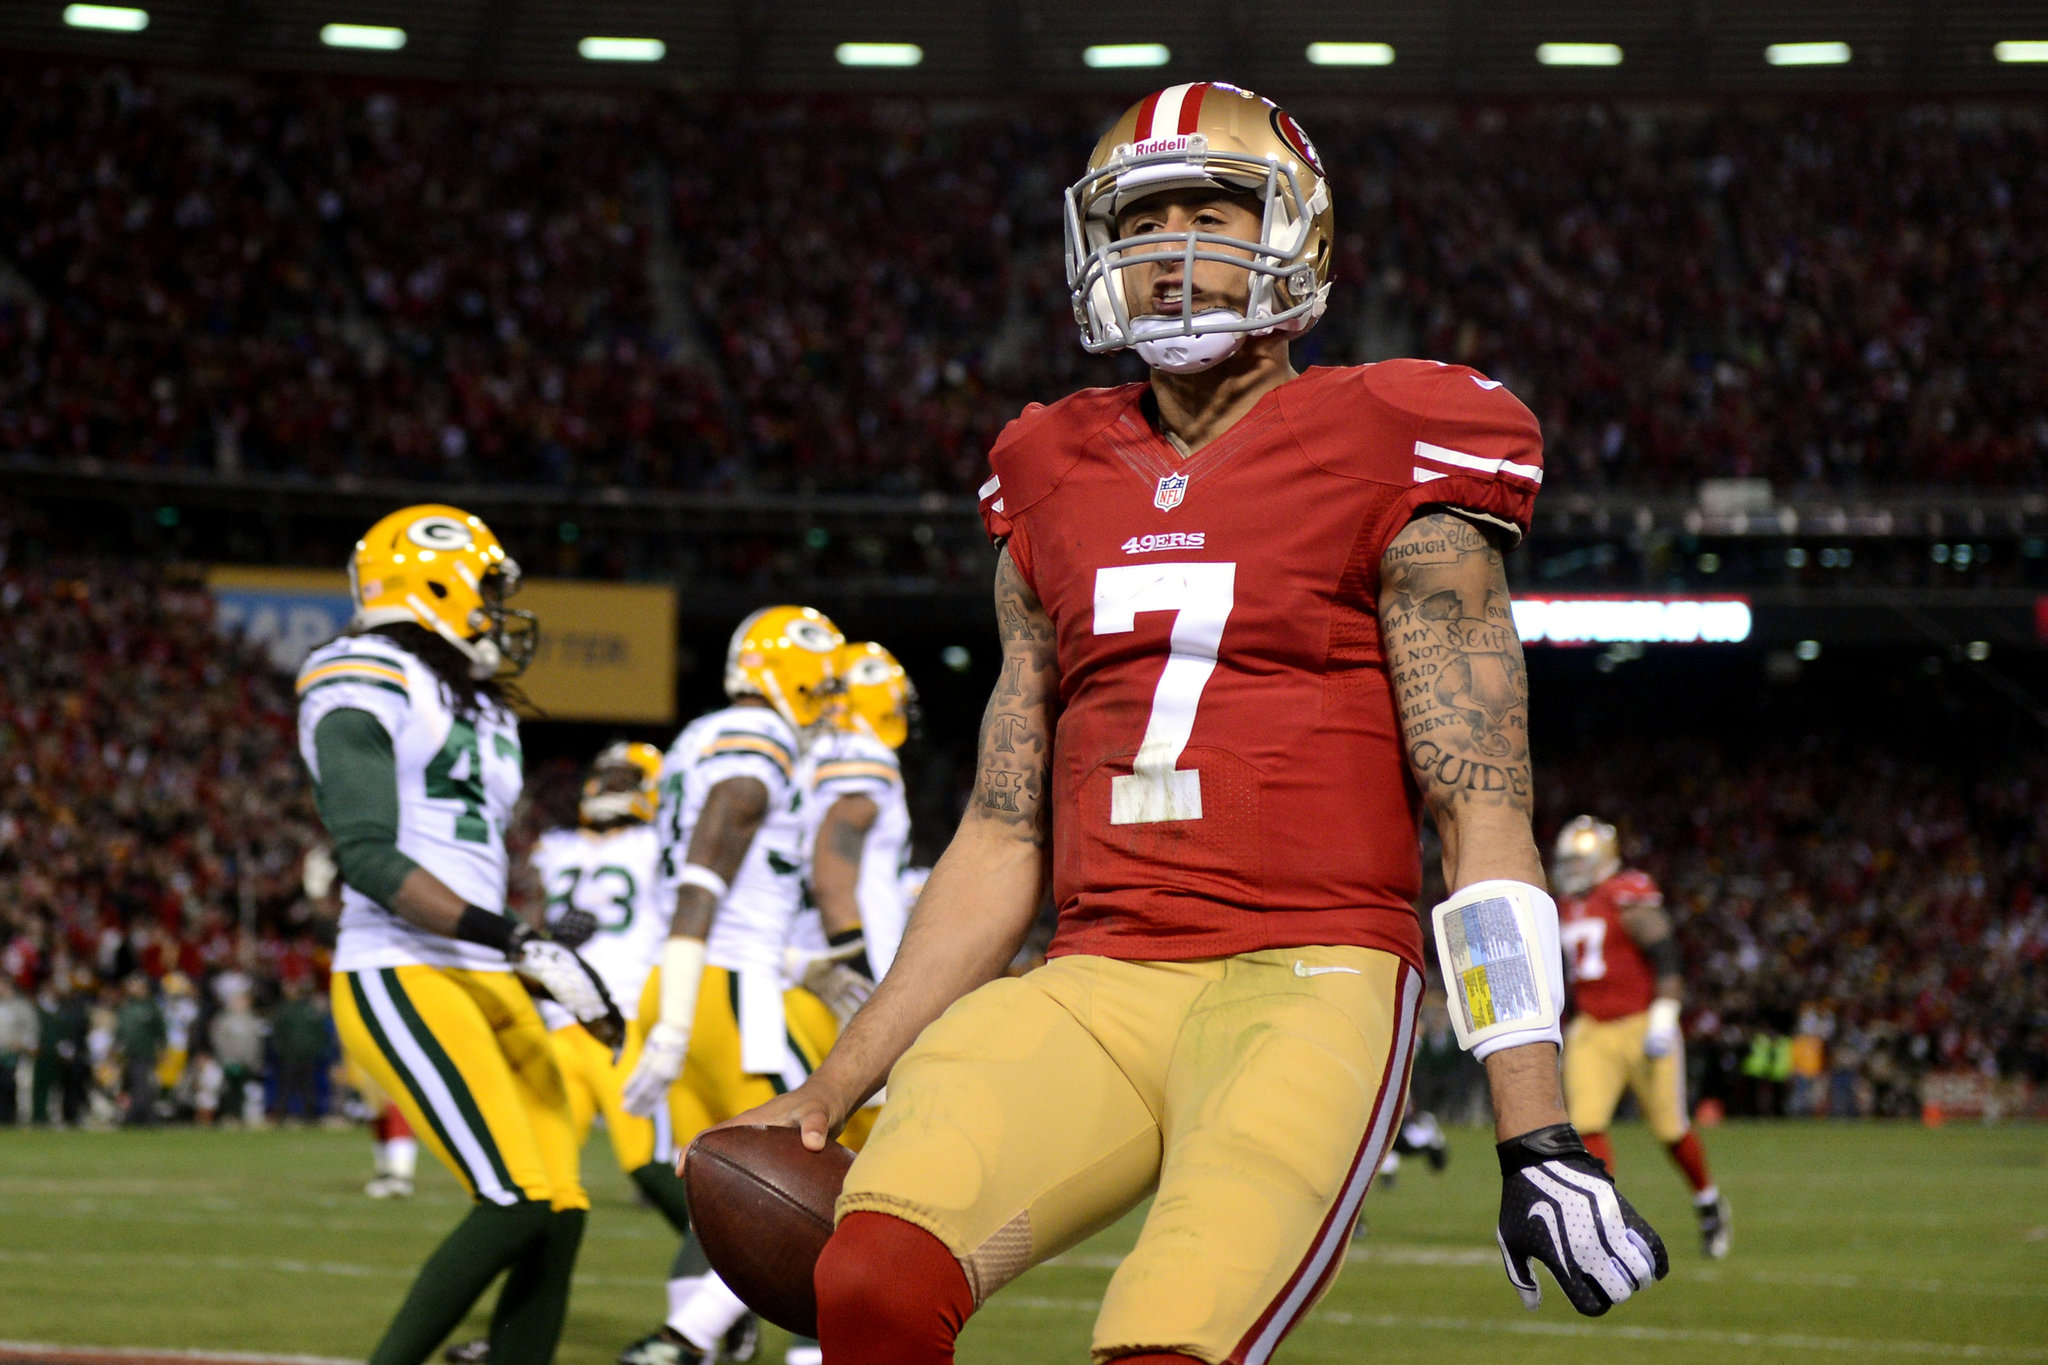 The 49ers' Colin Kaepernick rushed for a quarterback playoff record 181 yards and accounted for 4 touchdowns. Harry How/Getty Images